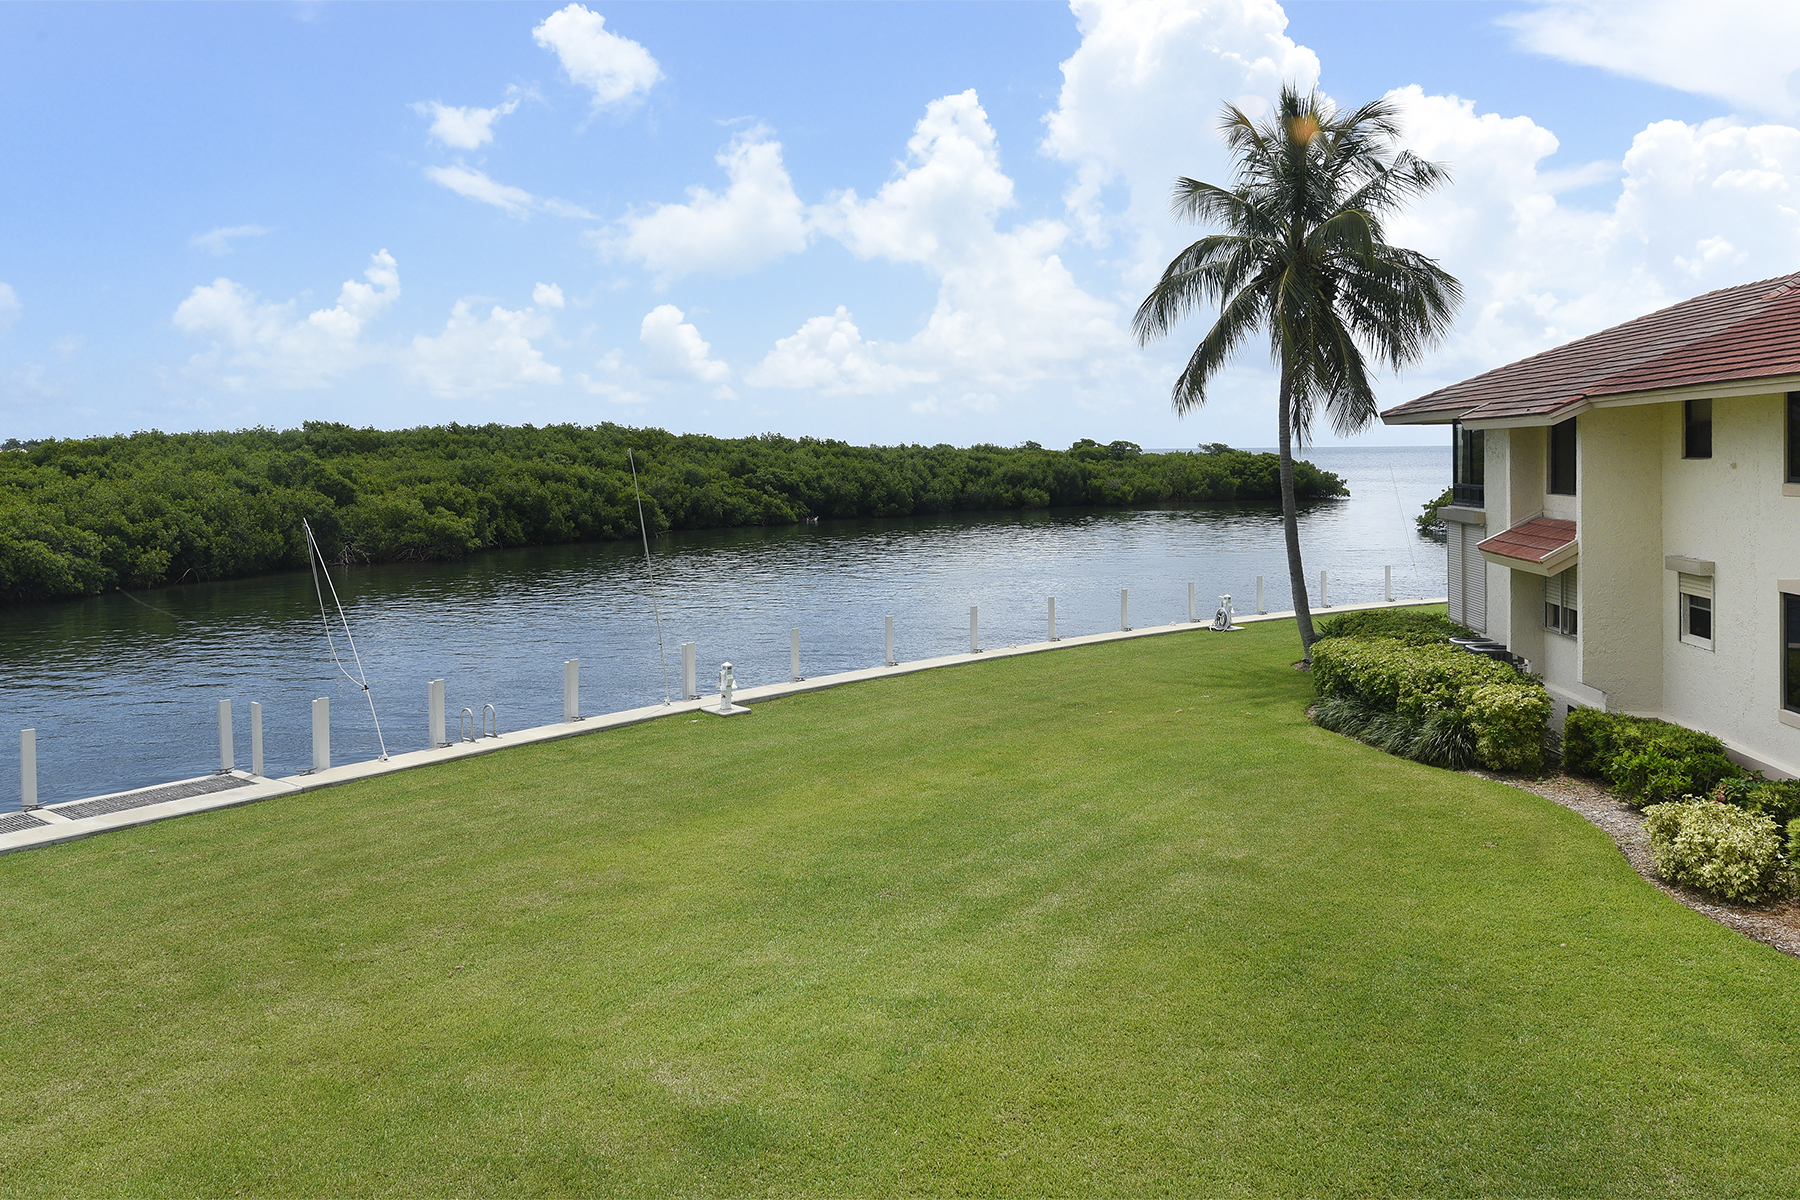 Additional photo for property listing at Beautiful Canalfront Condominium at Ocean Reef 55 Pumpkin Cay Road, Unit B Key Largo, Florida 33037 Usa